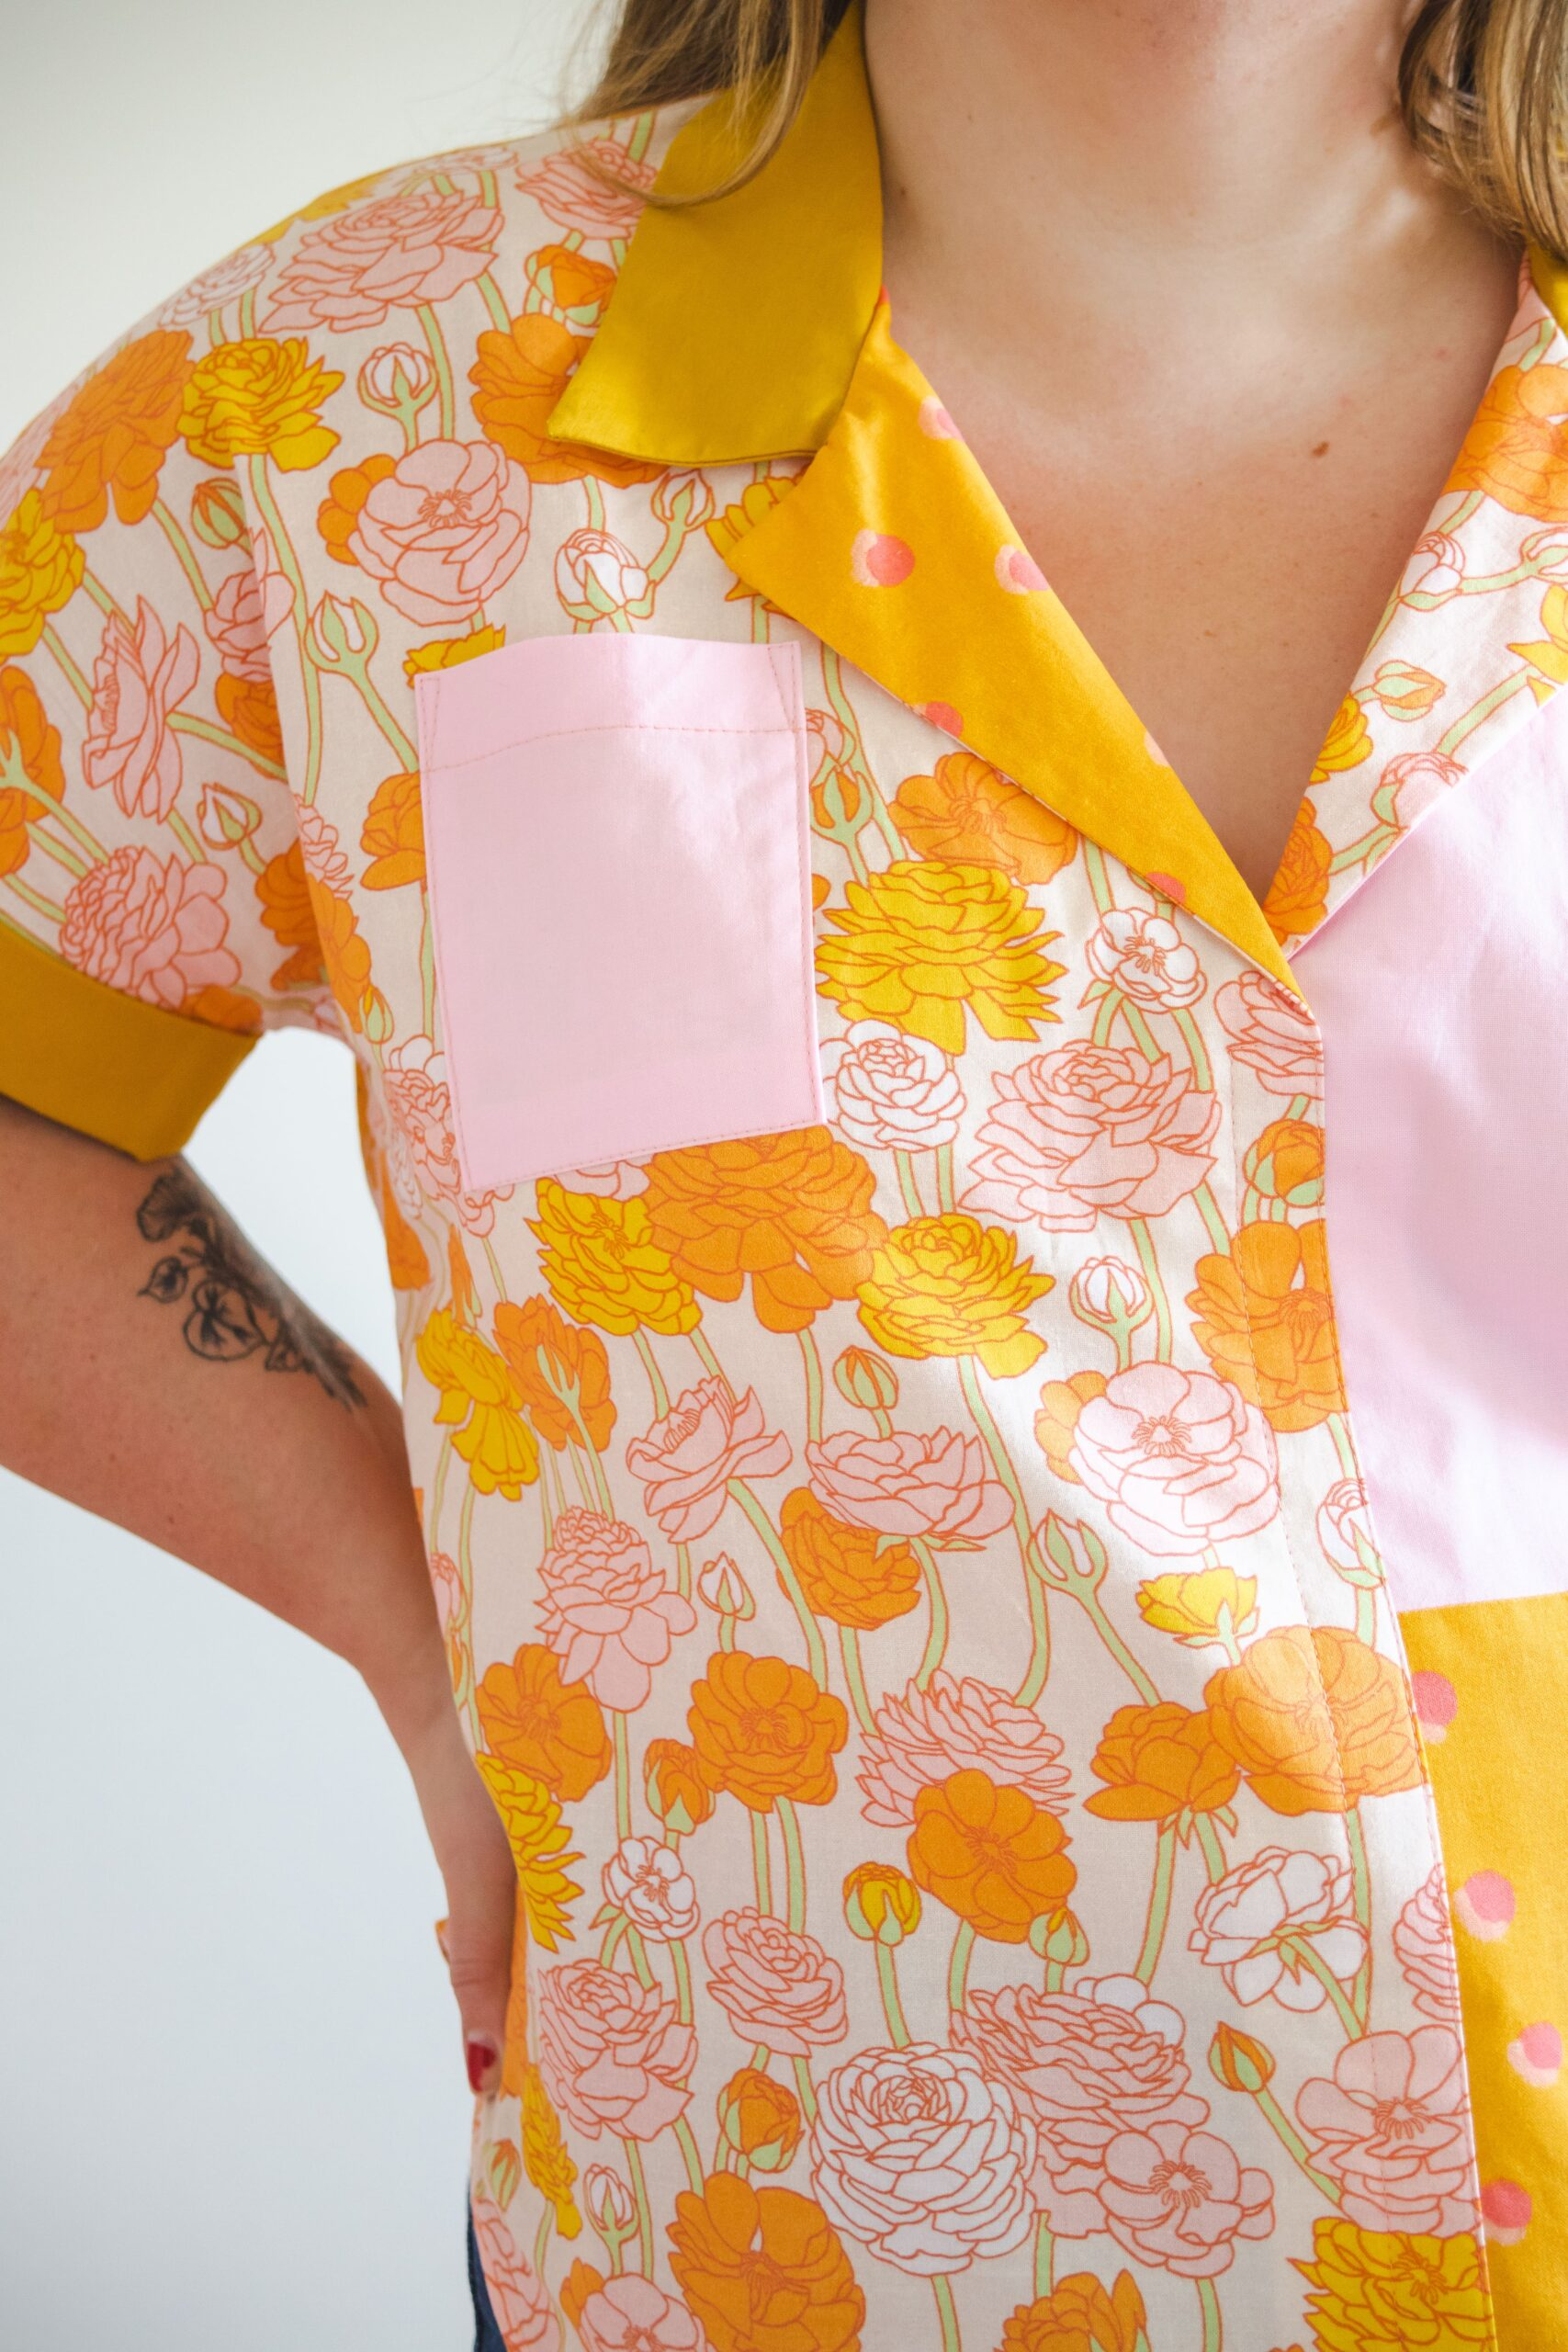 Close up of Meg wearing a yellow and pink shirt with polka dots and suns